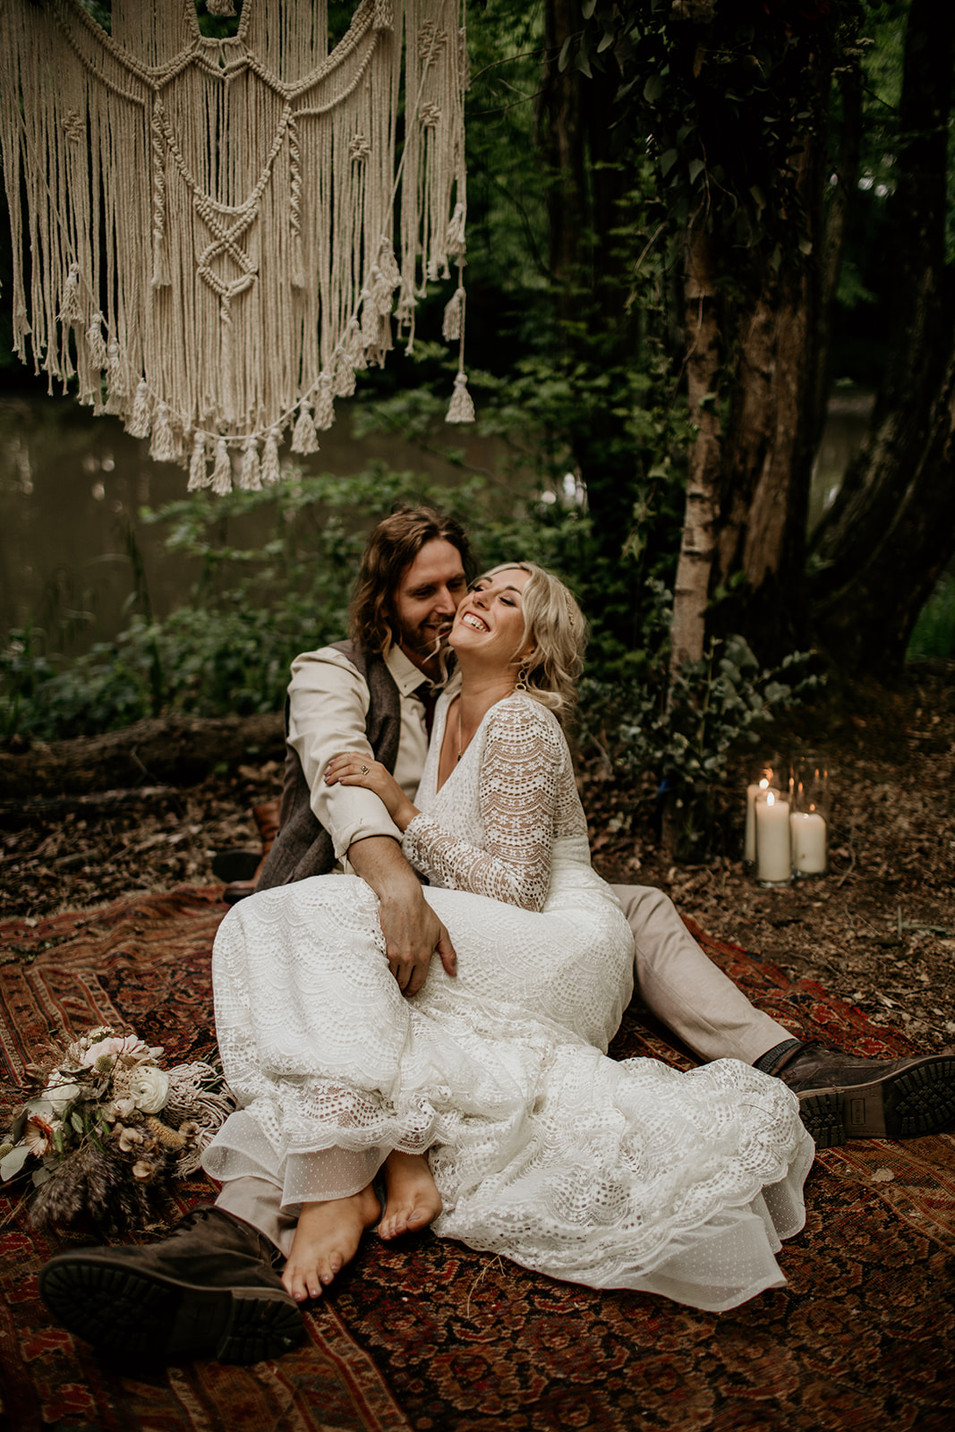 The perfect setting for a boho style infused wedding.